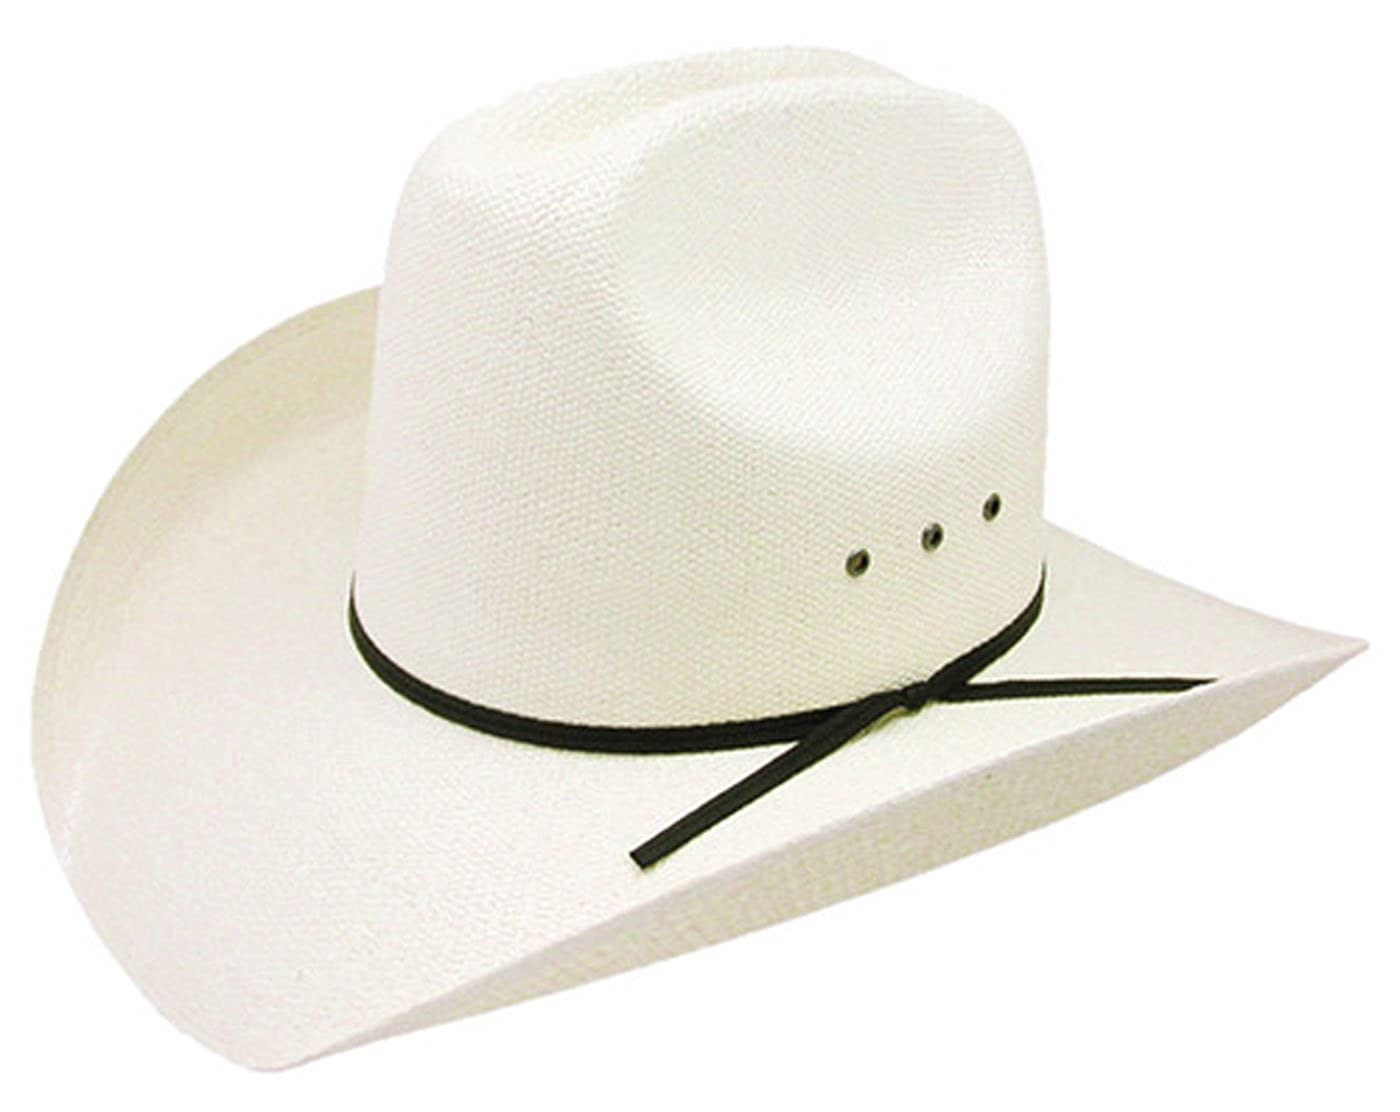 84ad1cf38 Amazon.com: Stetson And Dobbs Hats RSQH6046340 Qh60 04, Eyes,Reg ...